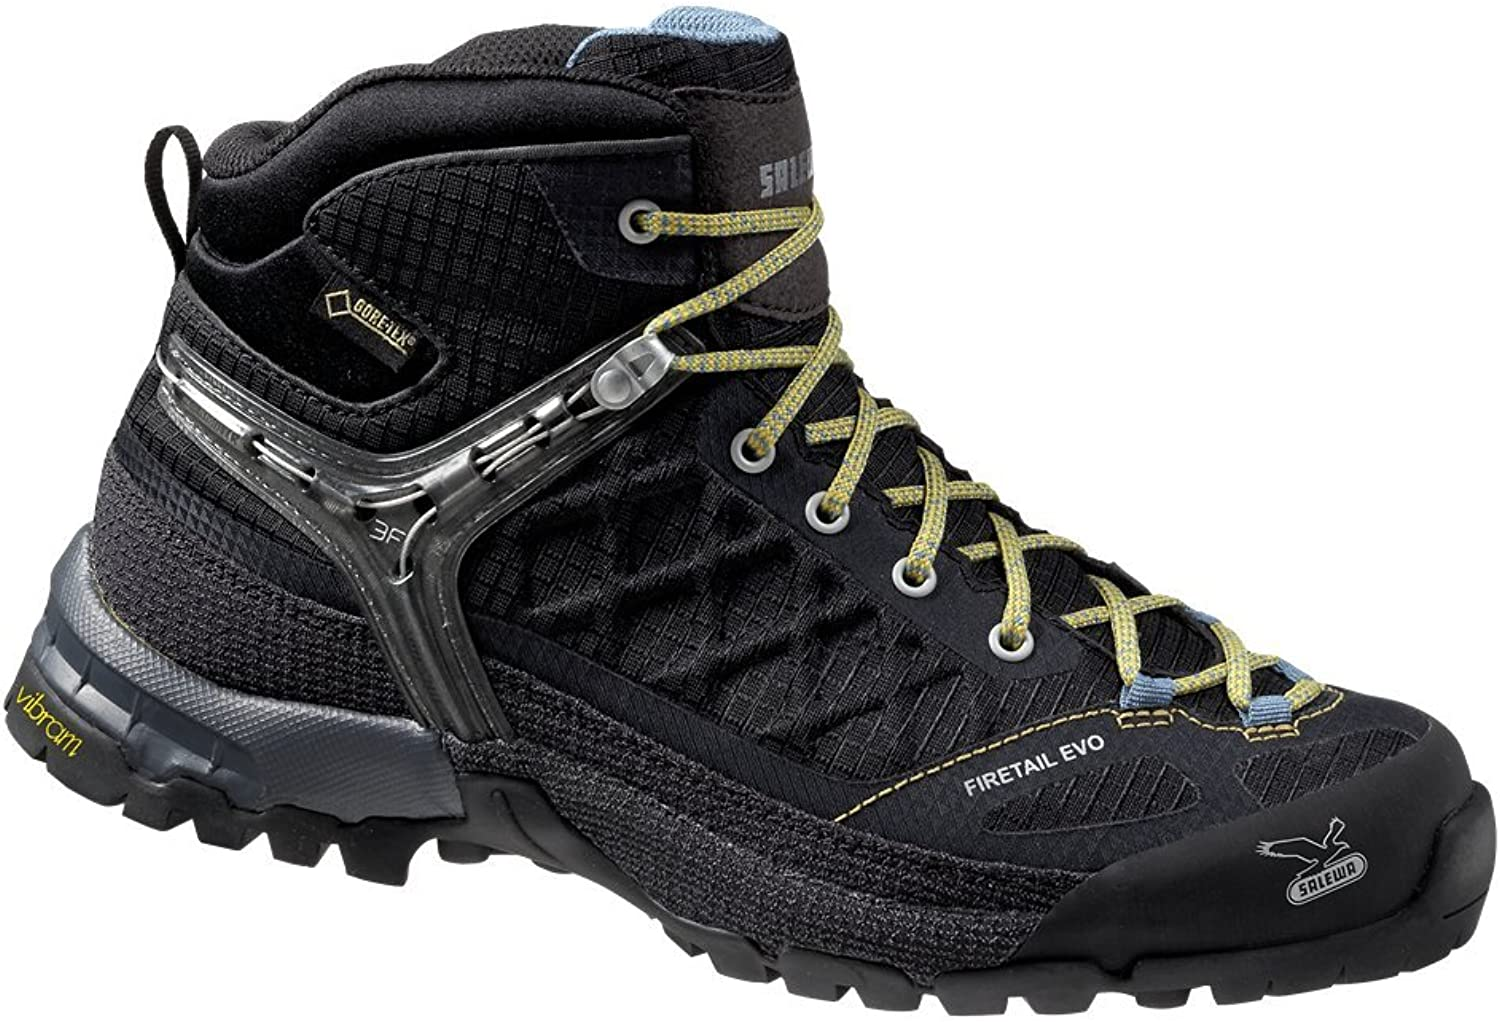 Salewa Women's Firetail EVO Mid GTX shoes